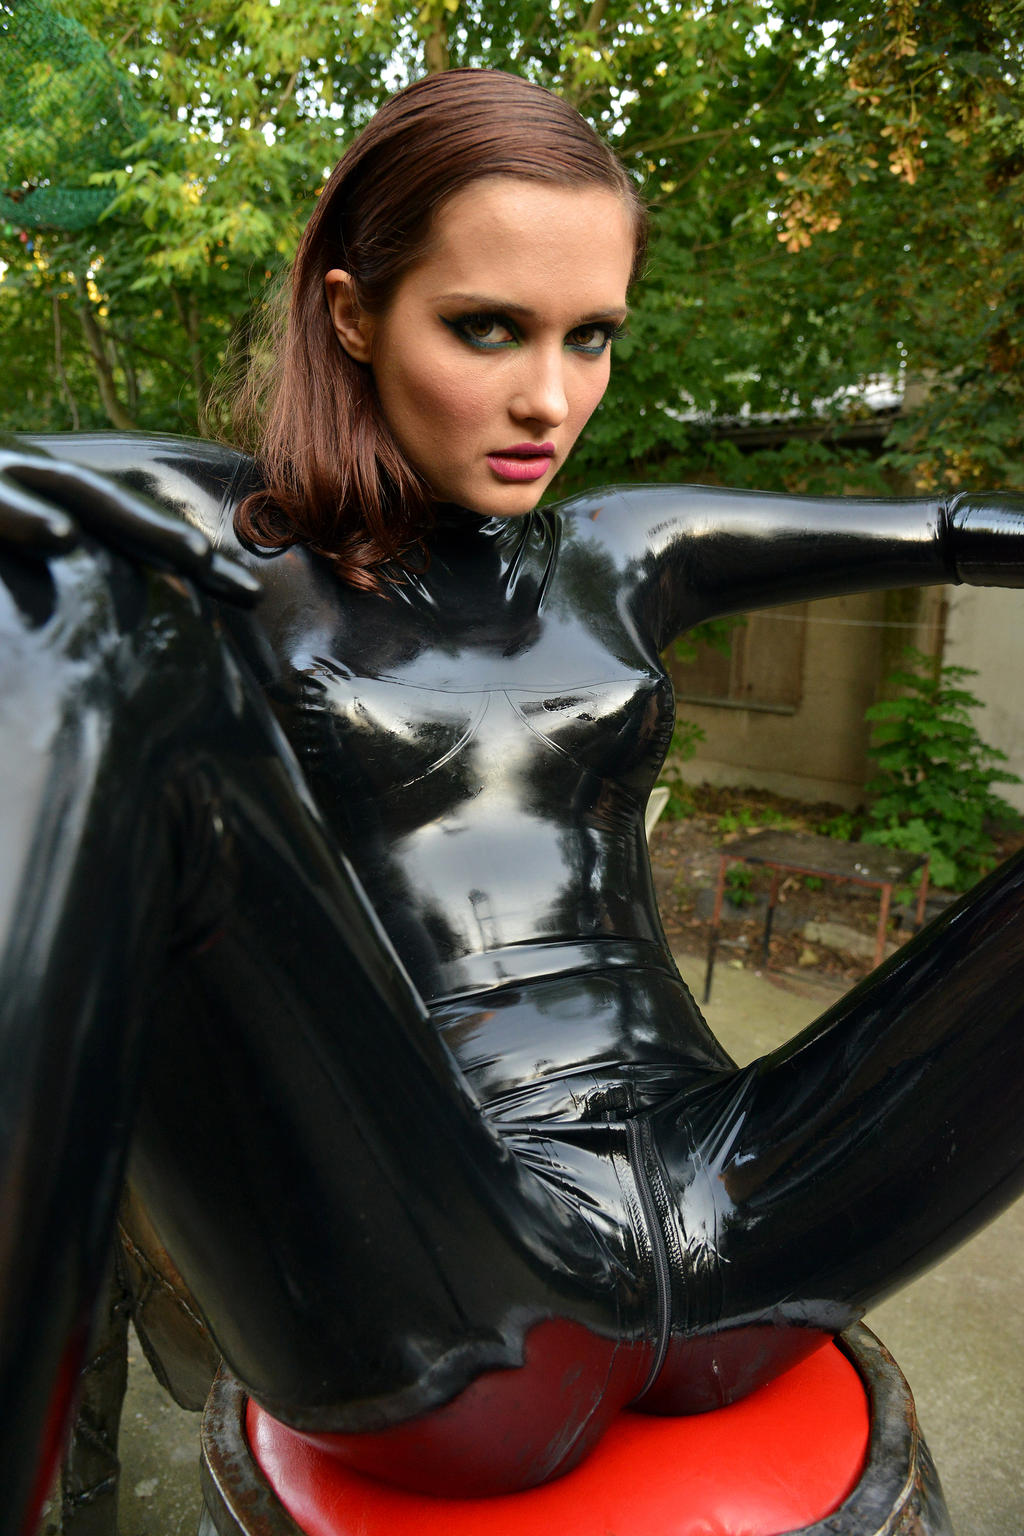 Girls in rubber latex